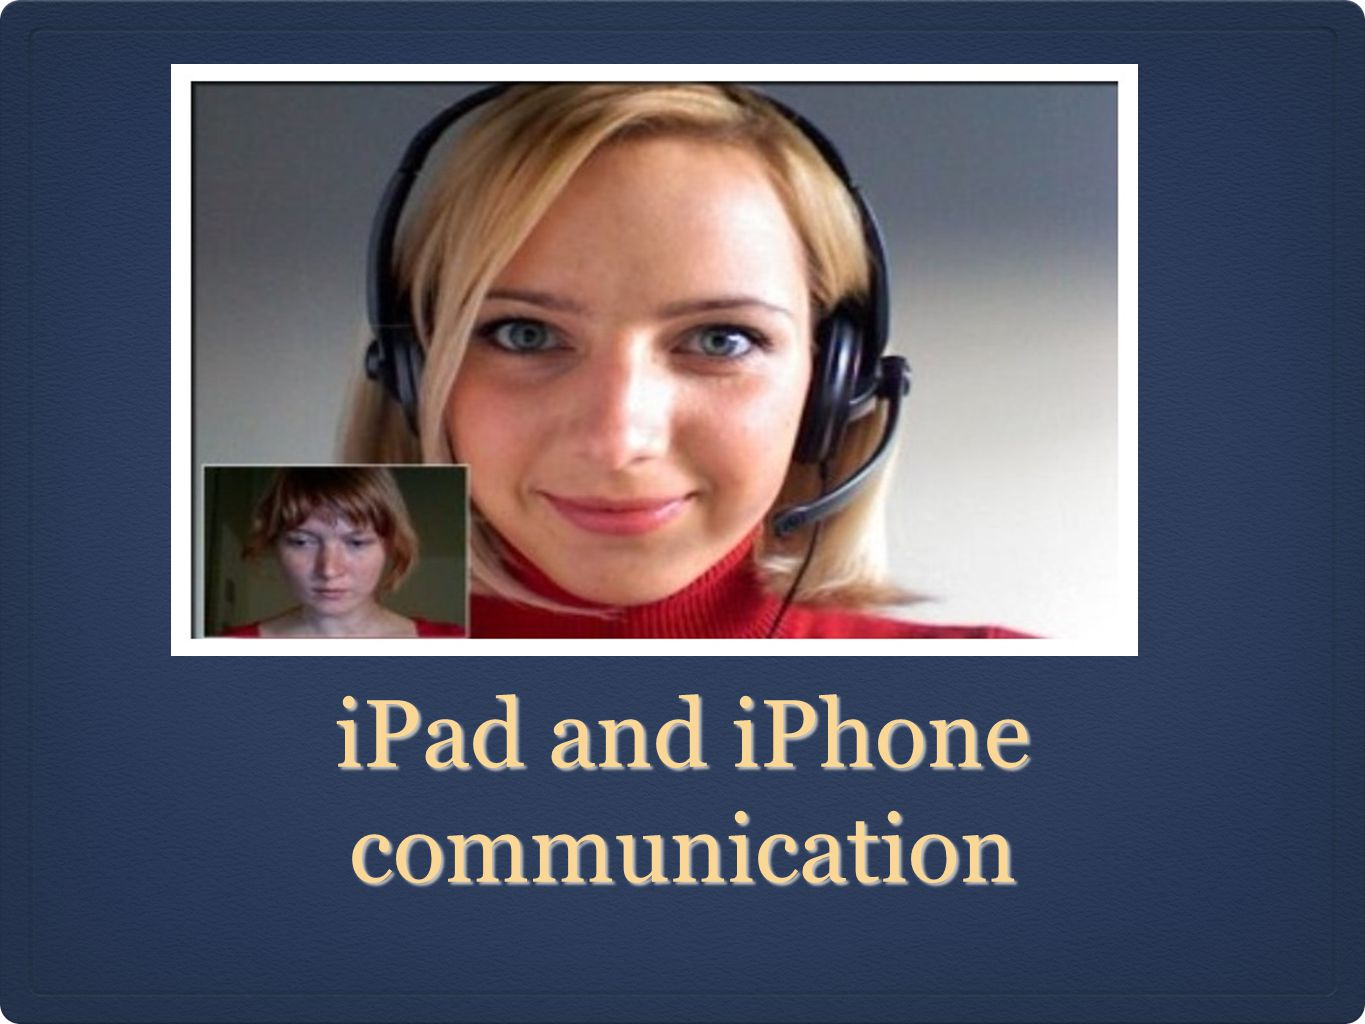 iPad and iPhone communication